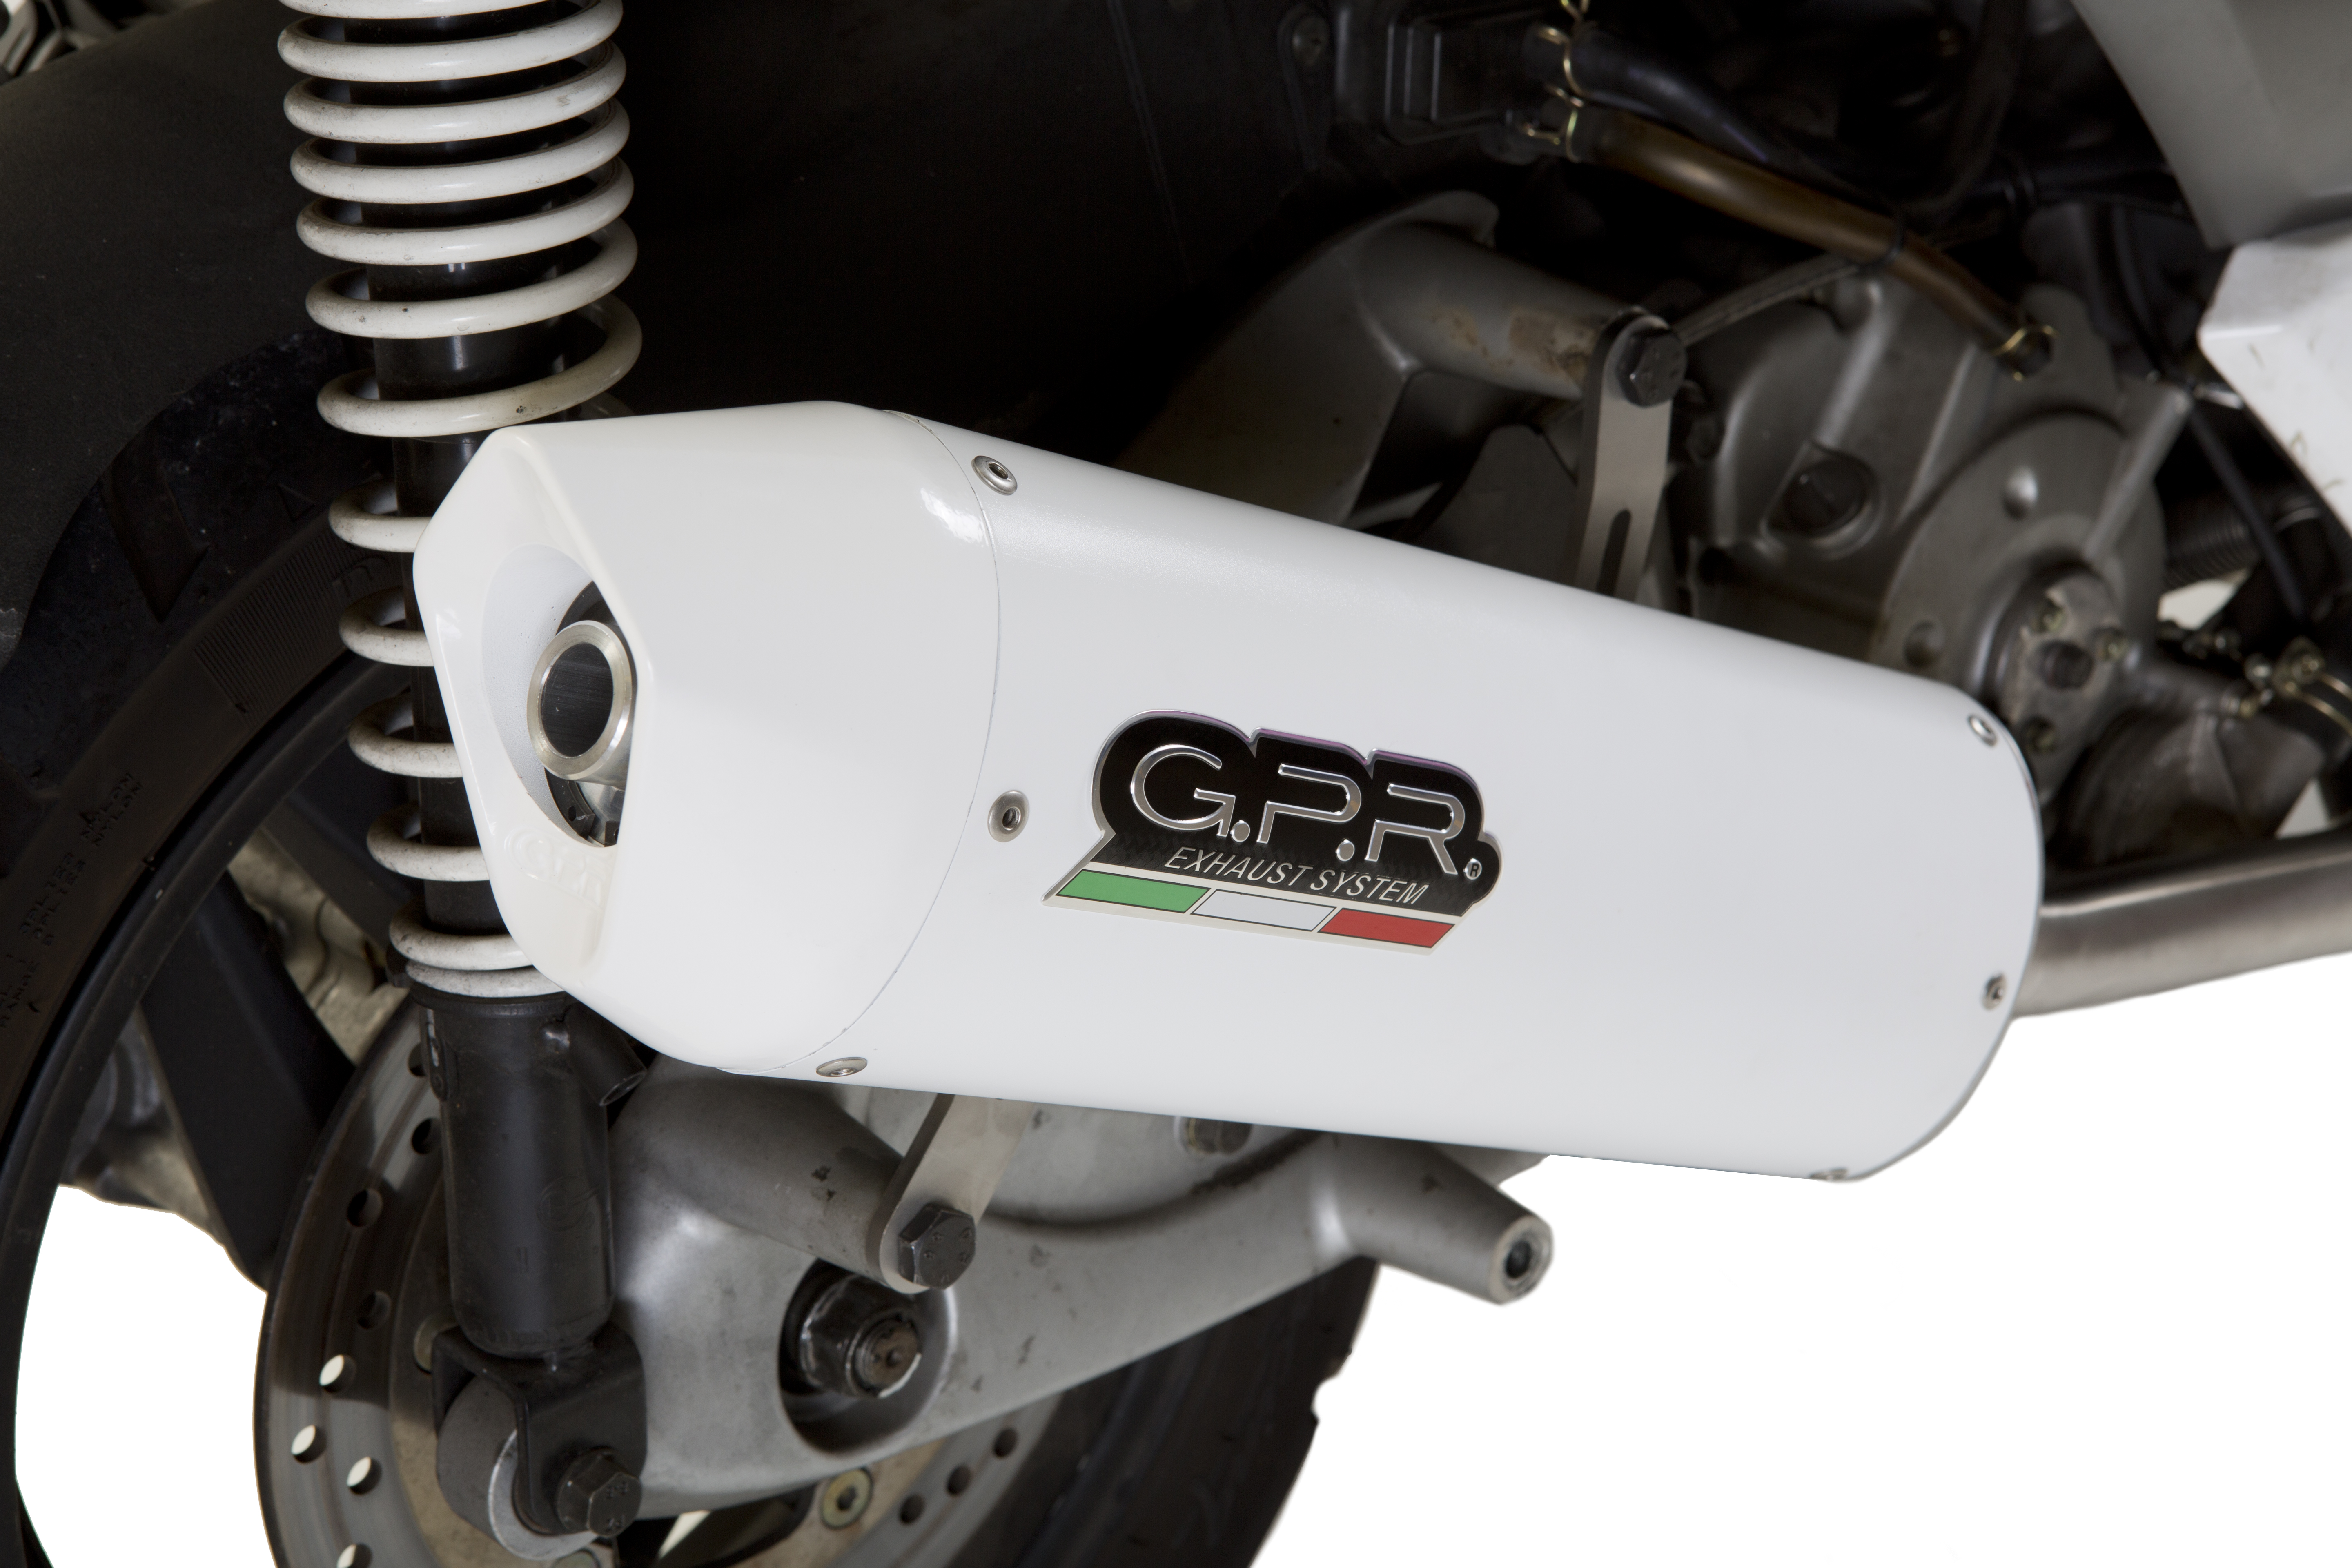 ESCAPE GPR EXHAUST SYSTEMS SC.CAT.18.1.ALB PIAGGIO BEVERLY 125 2